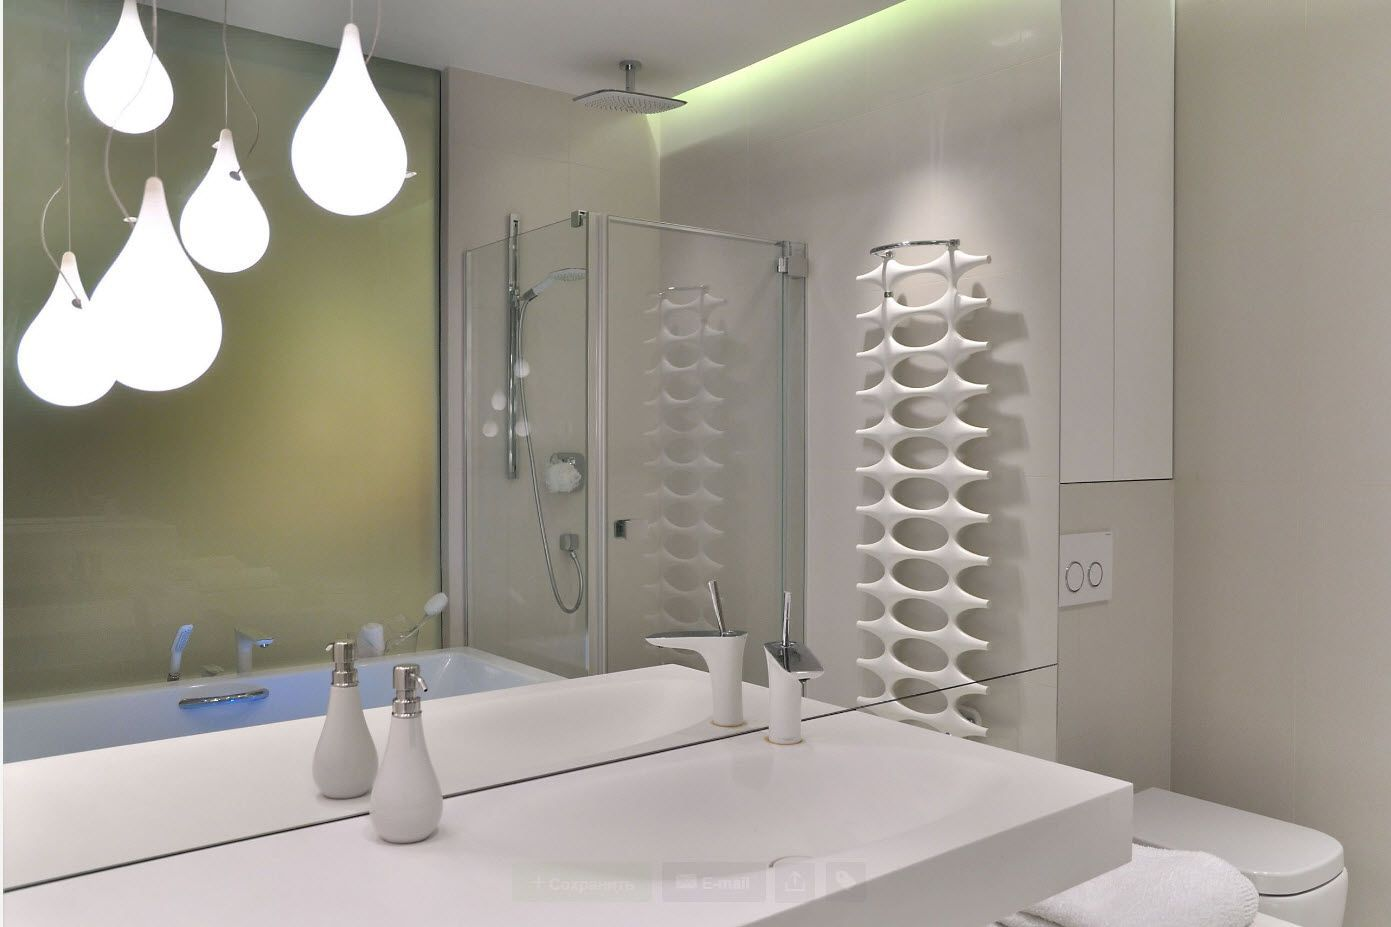 Water radiator of peculiar form in the modern white creamy bathroom